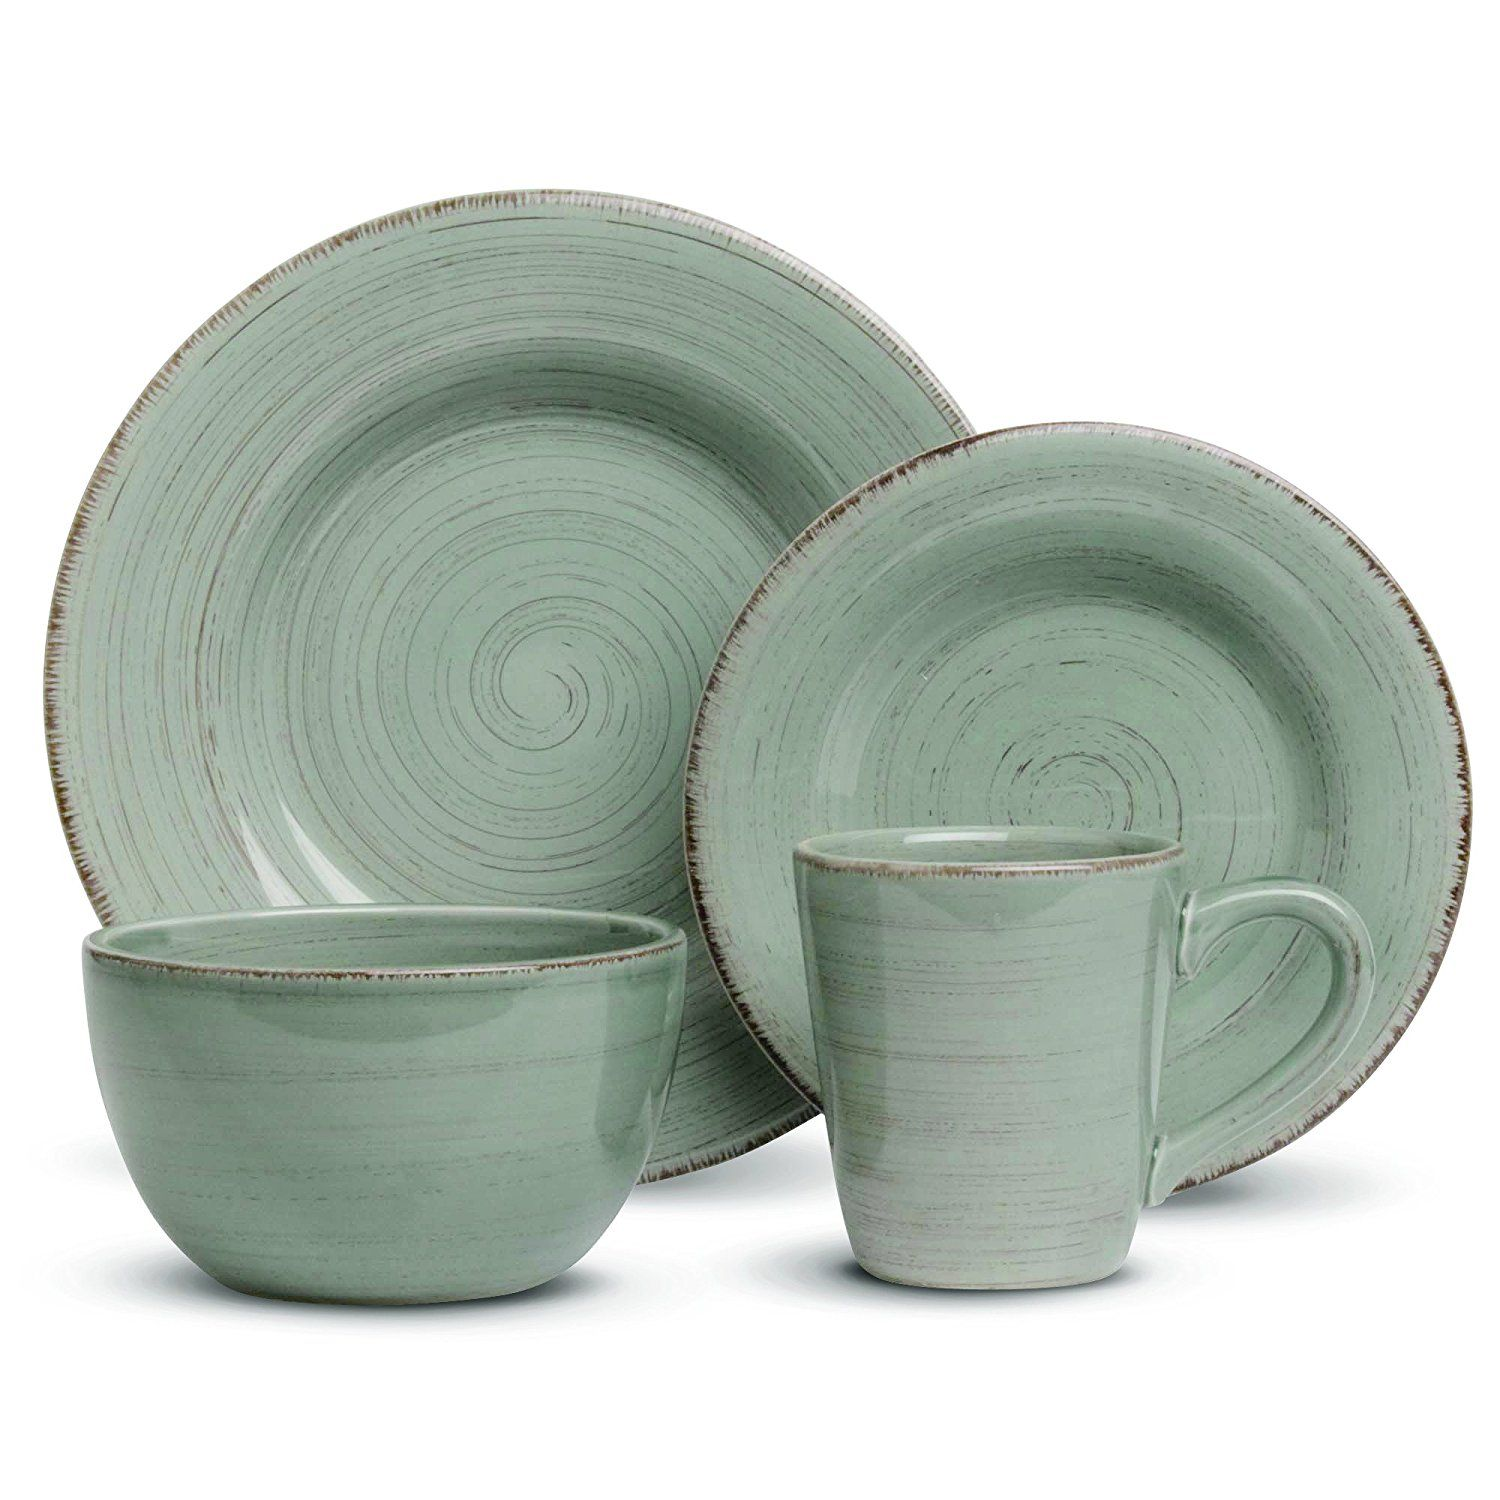 Watch 16 Ceramic Dinnerware Sets That Look Way More Expensive than TheyAre video